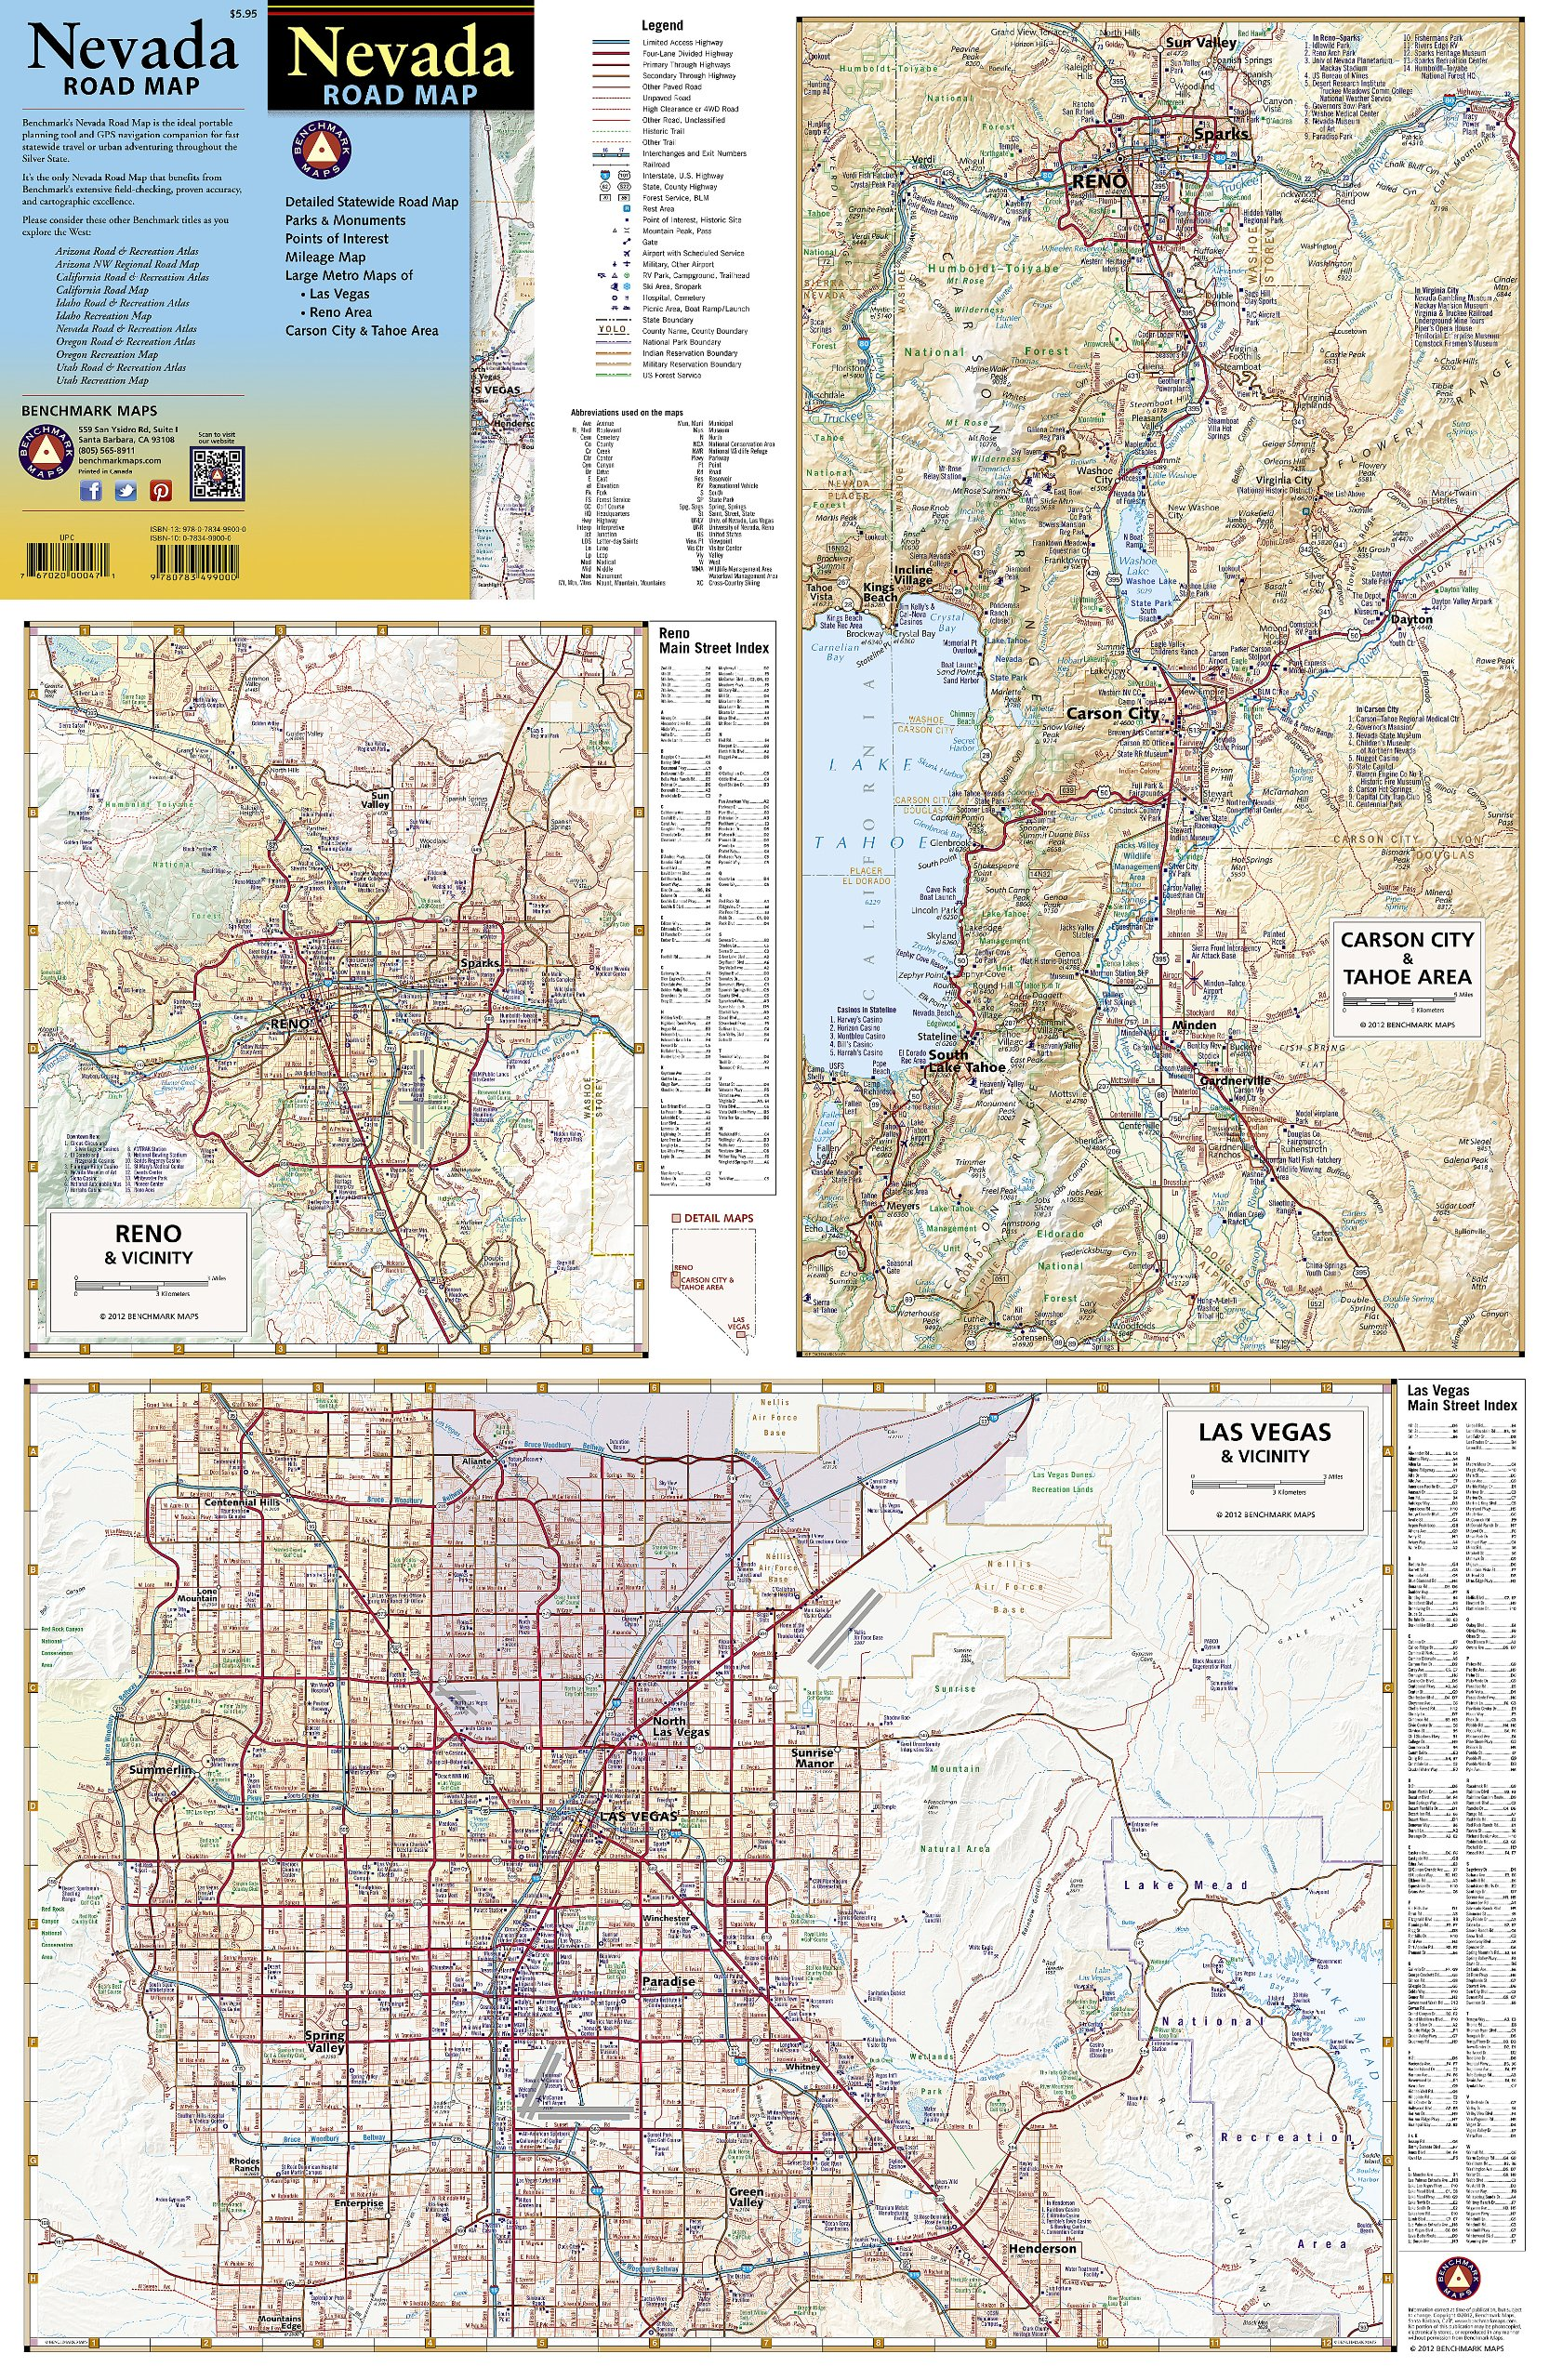 Nevada Road Map Benchmark Maps Nevada Benchmark Maps Firm - Maps of nevada